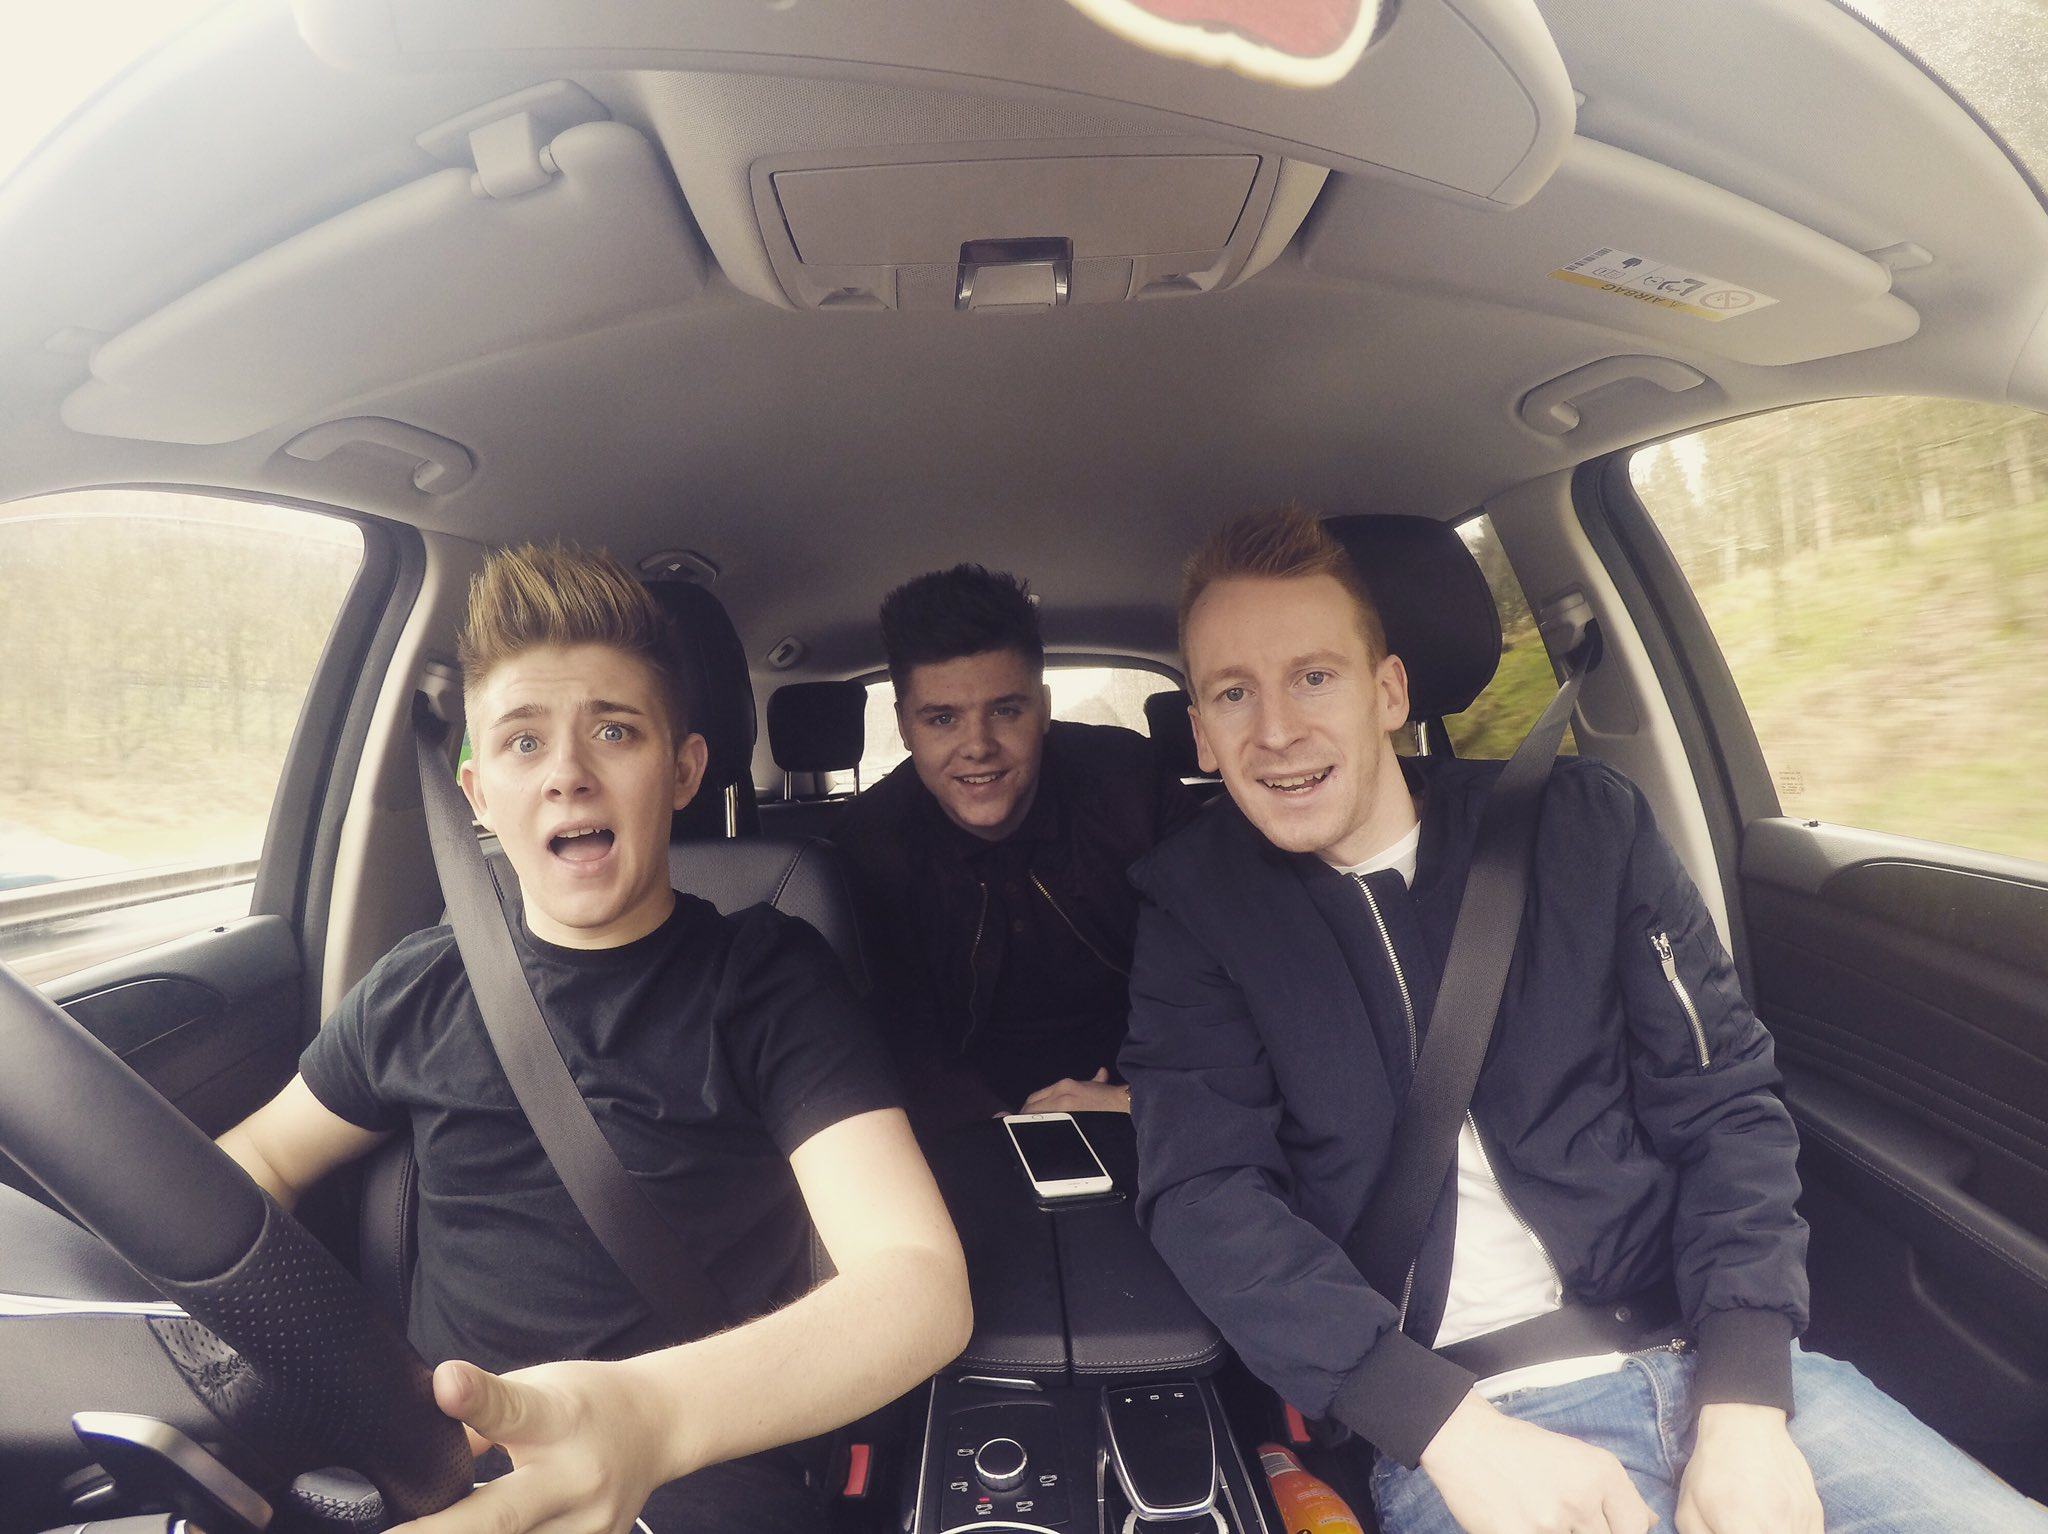 On our way to today's gig in Dundee @rossmenzies_ @martinand1008, see you all soon 😜 @tayfm https://t.co/GF9ndlYYOR